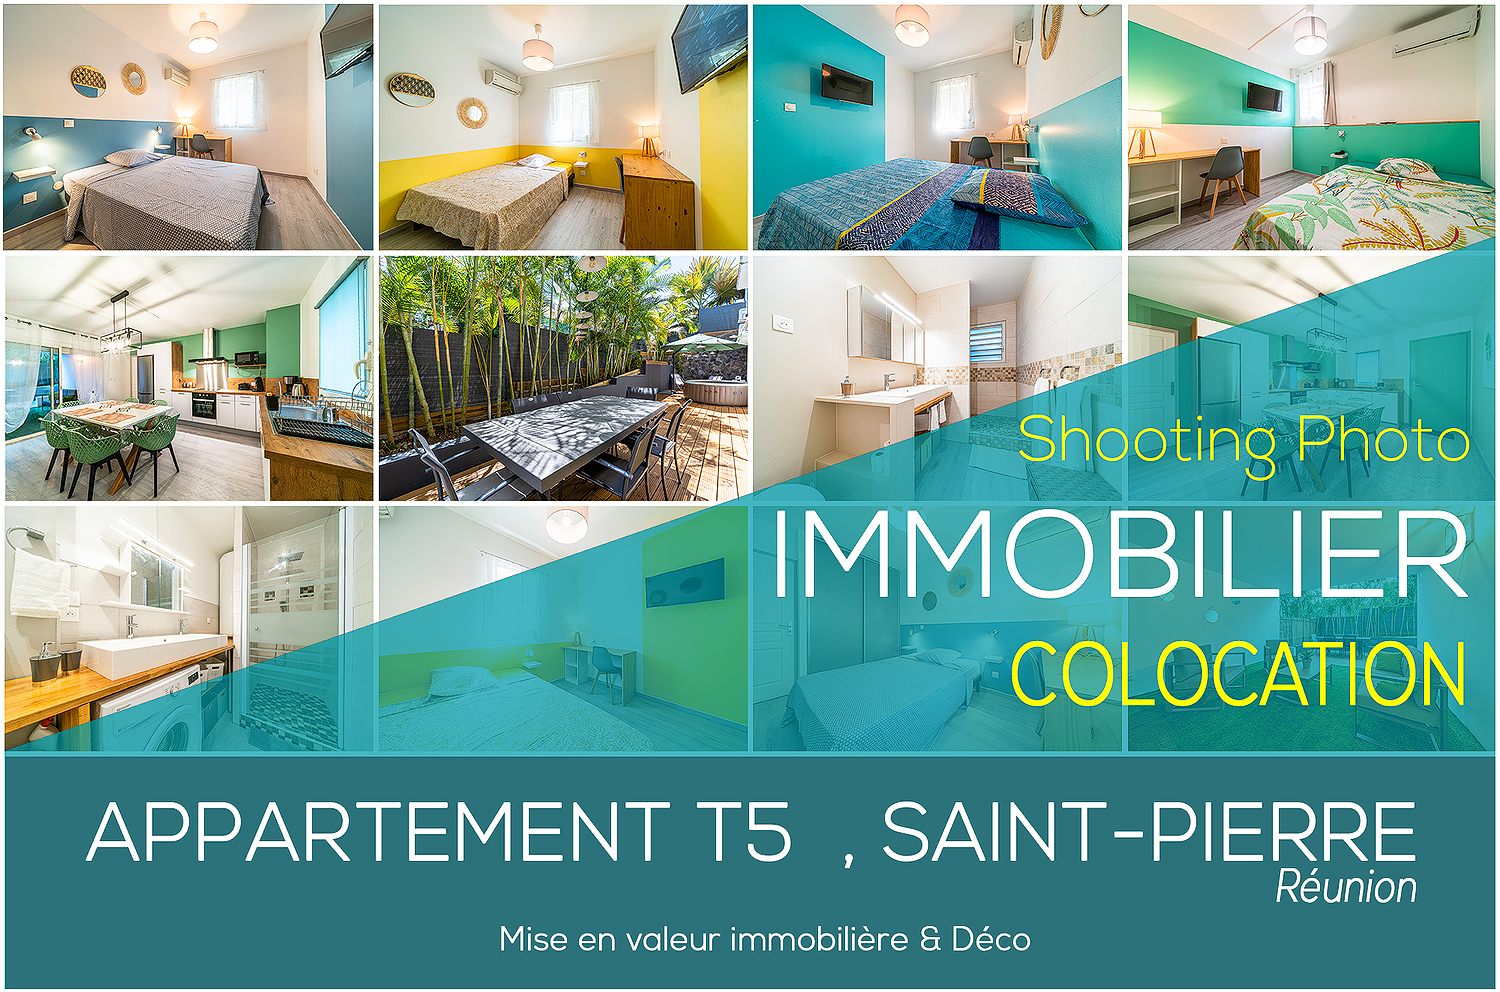 Shooting Photographe Immobilier Reunion Colocation